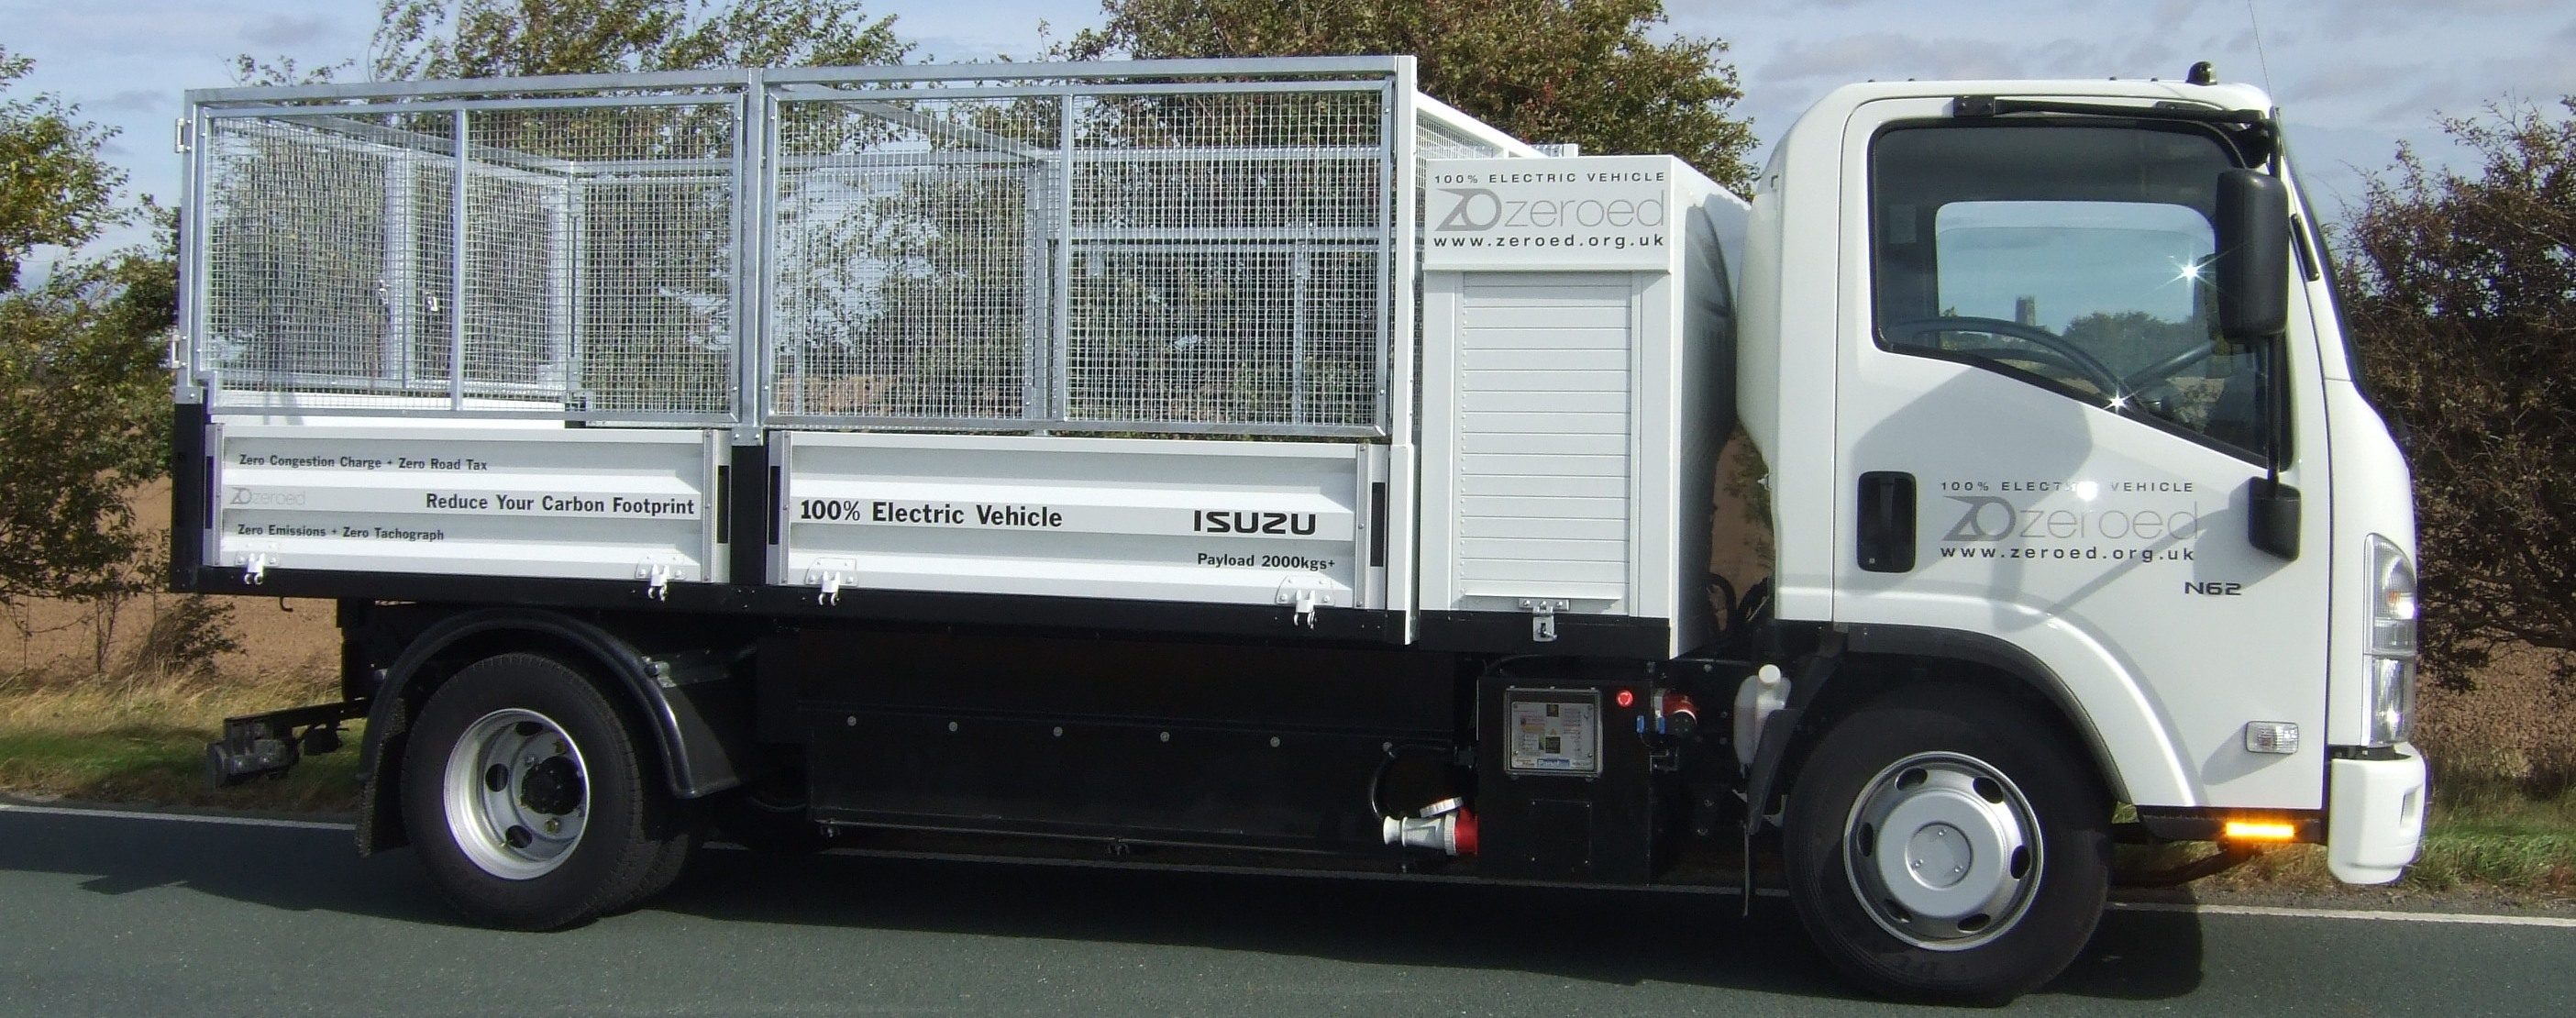 6.2t Caged Tipper, 100 miles per day